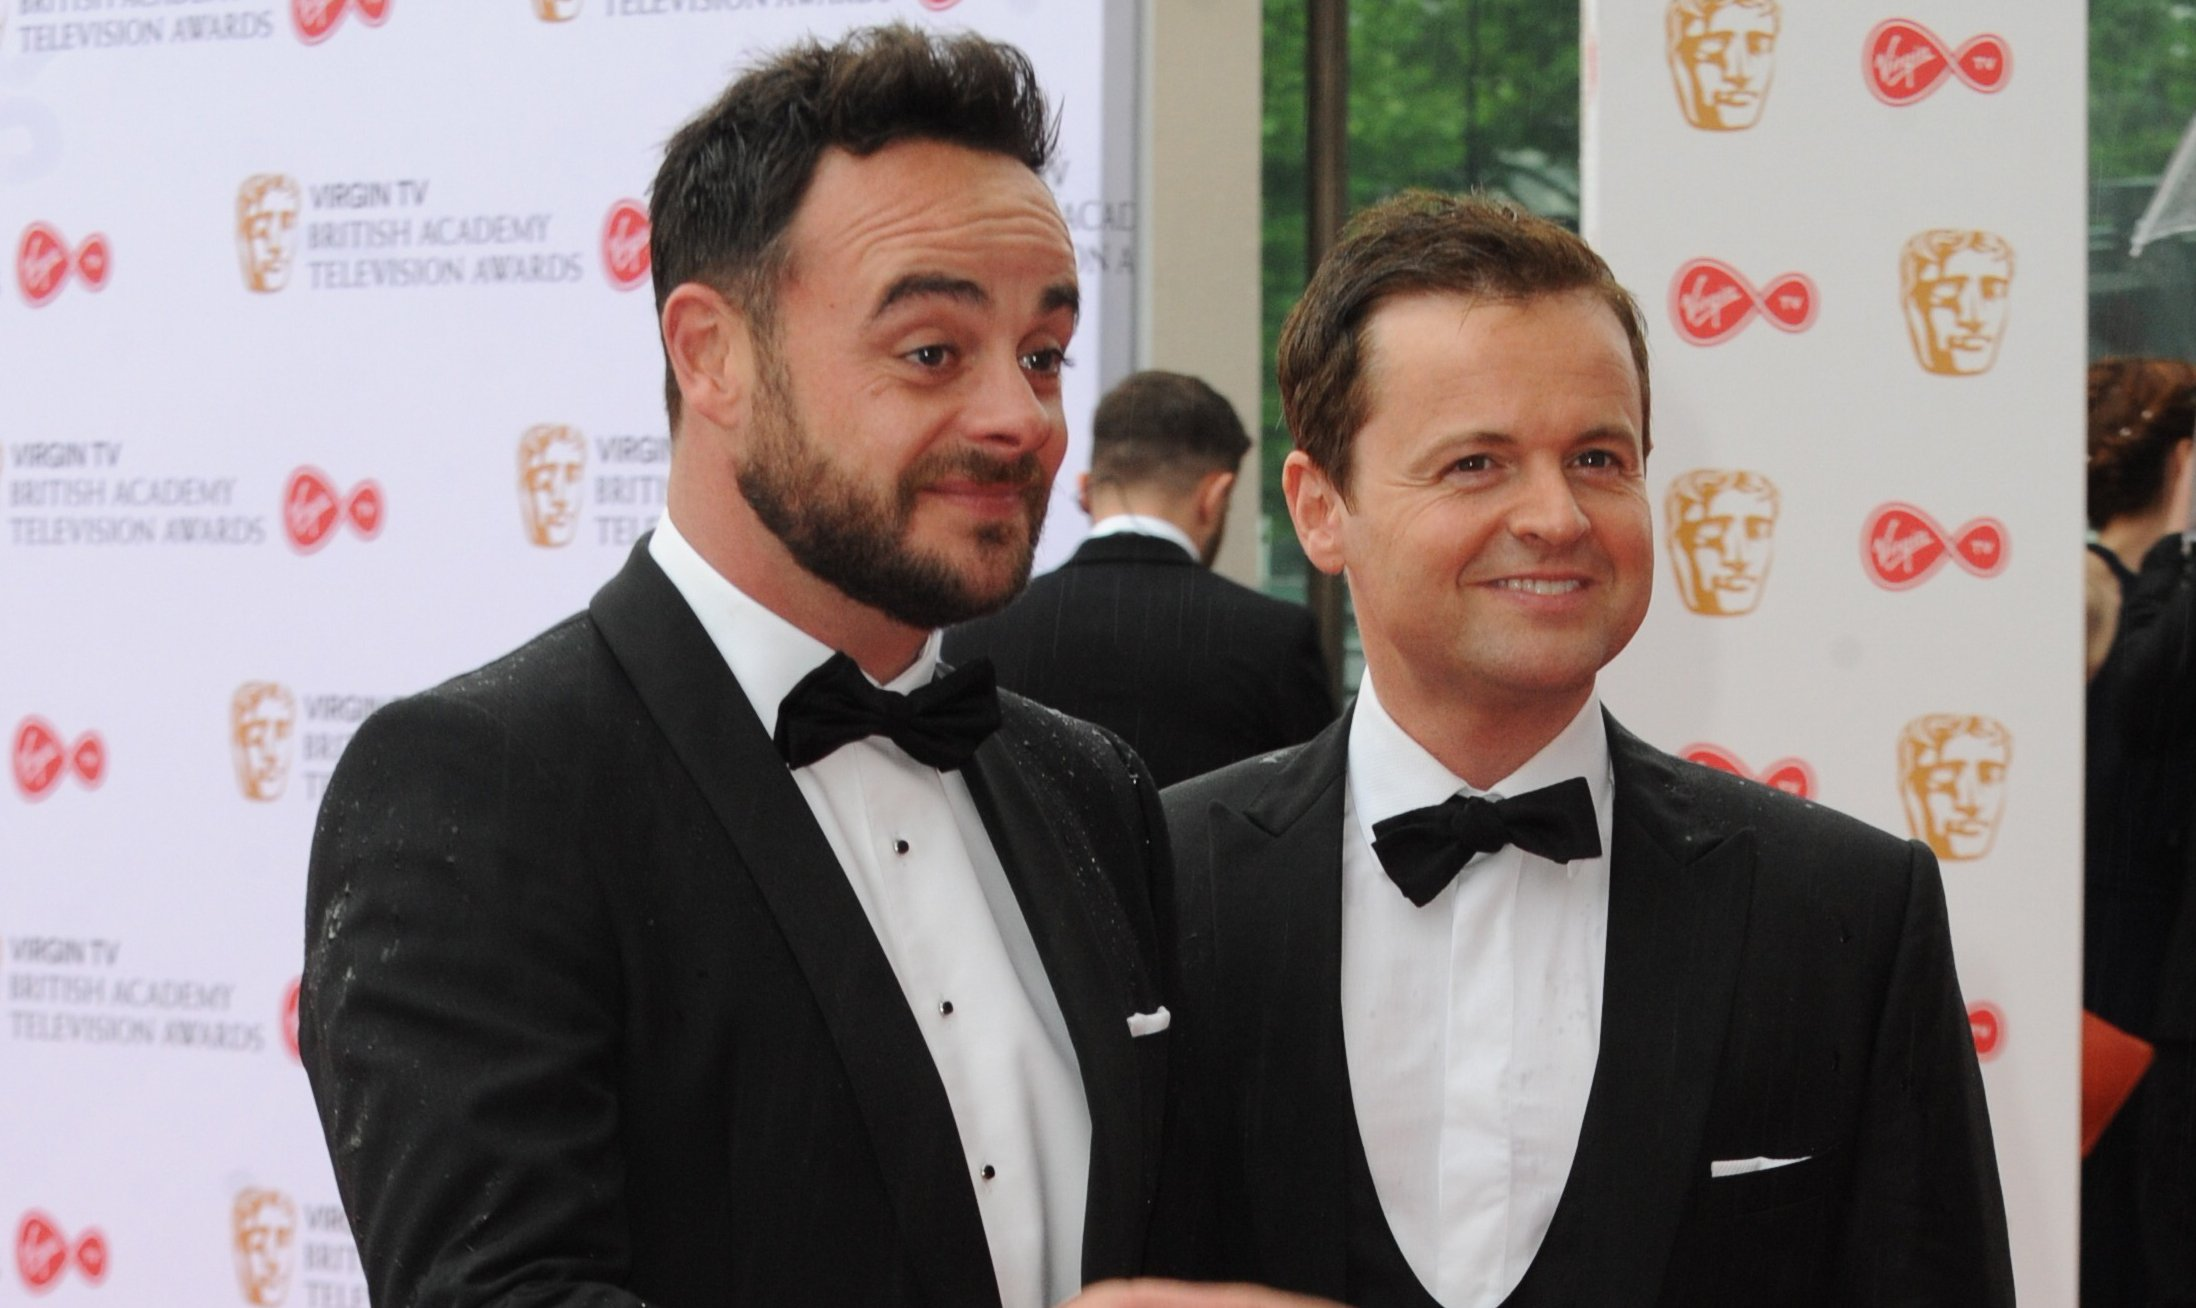 Ant McPartlin and Dec Donnelly earned £12K PER DAY last year